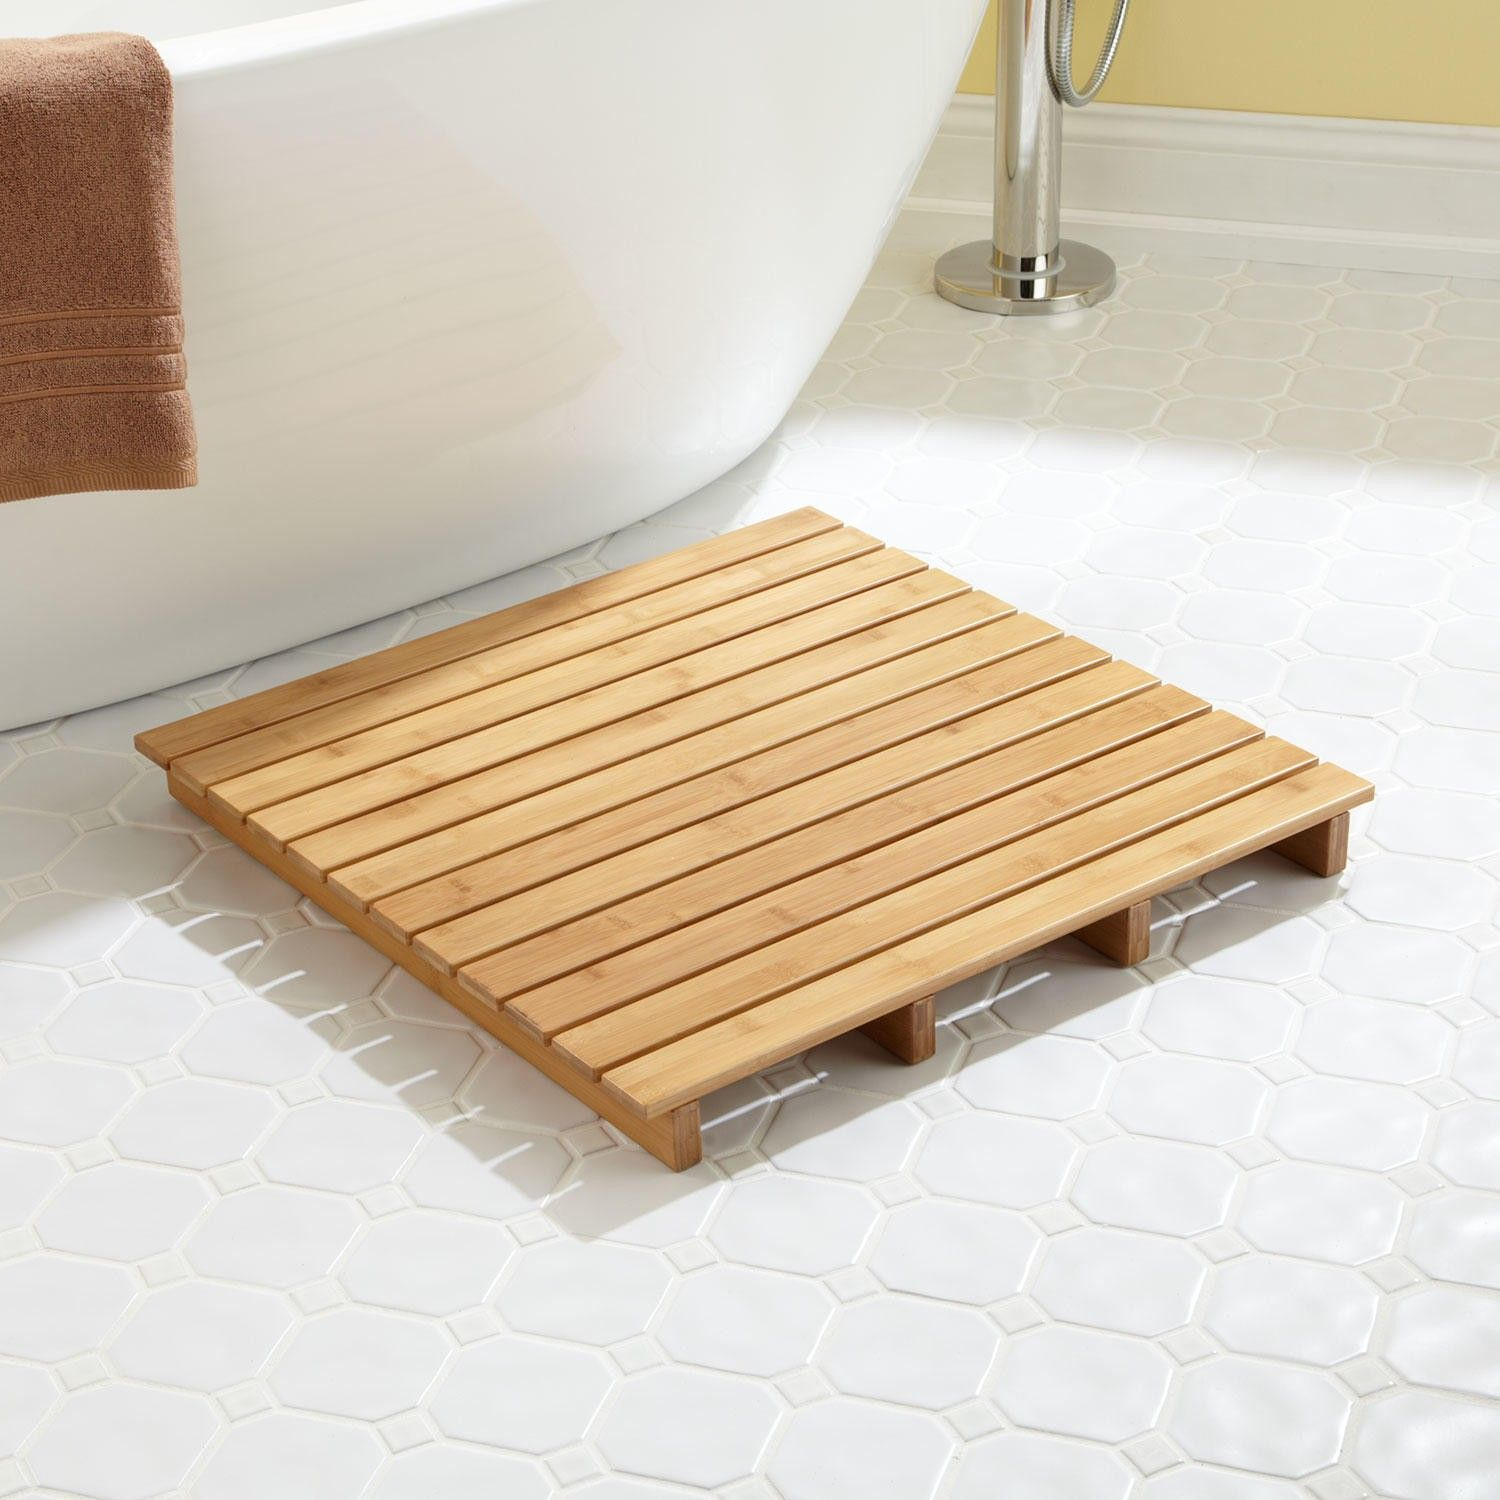 7 Bath Mat Ideas To Make Your Bathroom Feel More Like A Spa Teak Bath Bamboo Bath Mats Unique Bath Mats